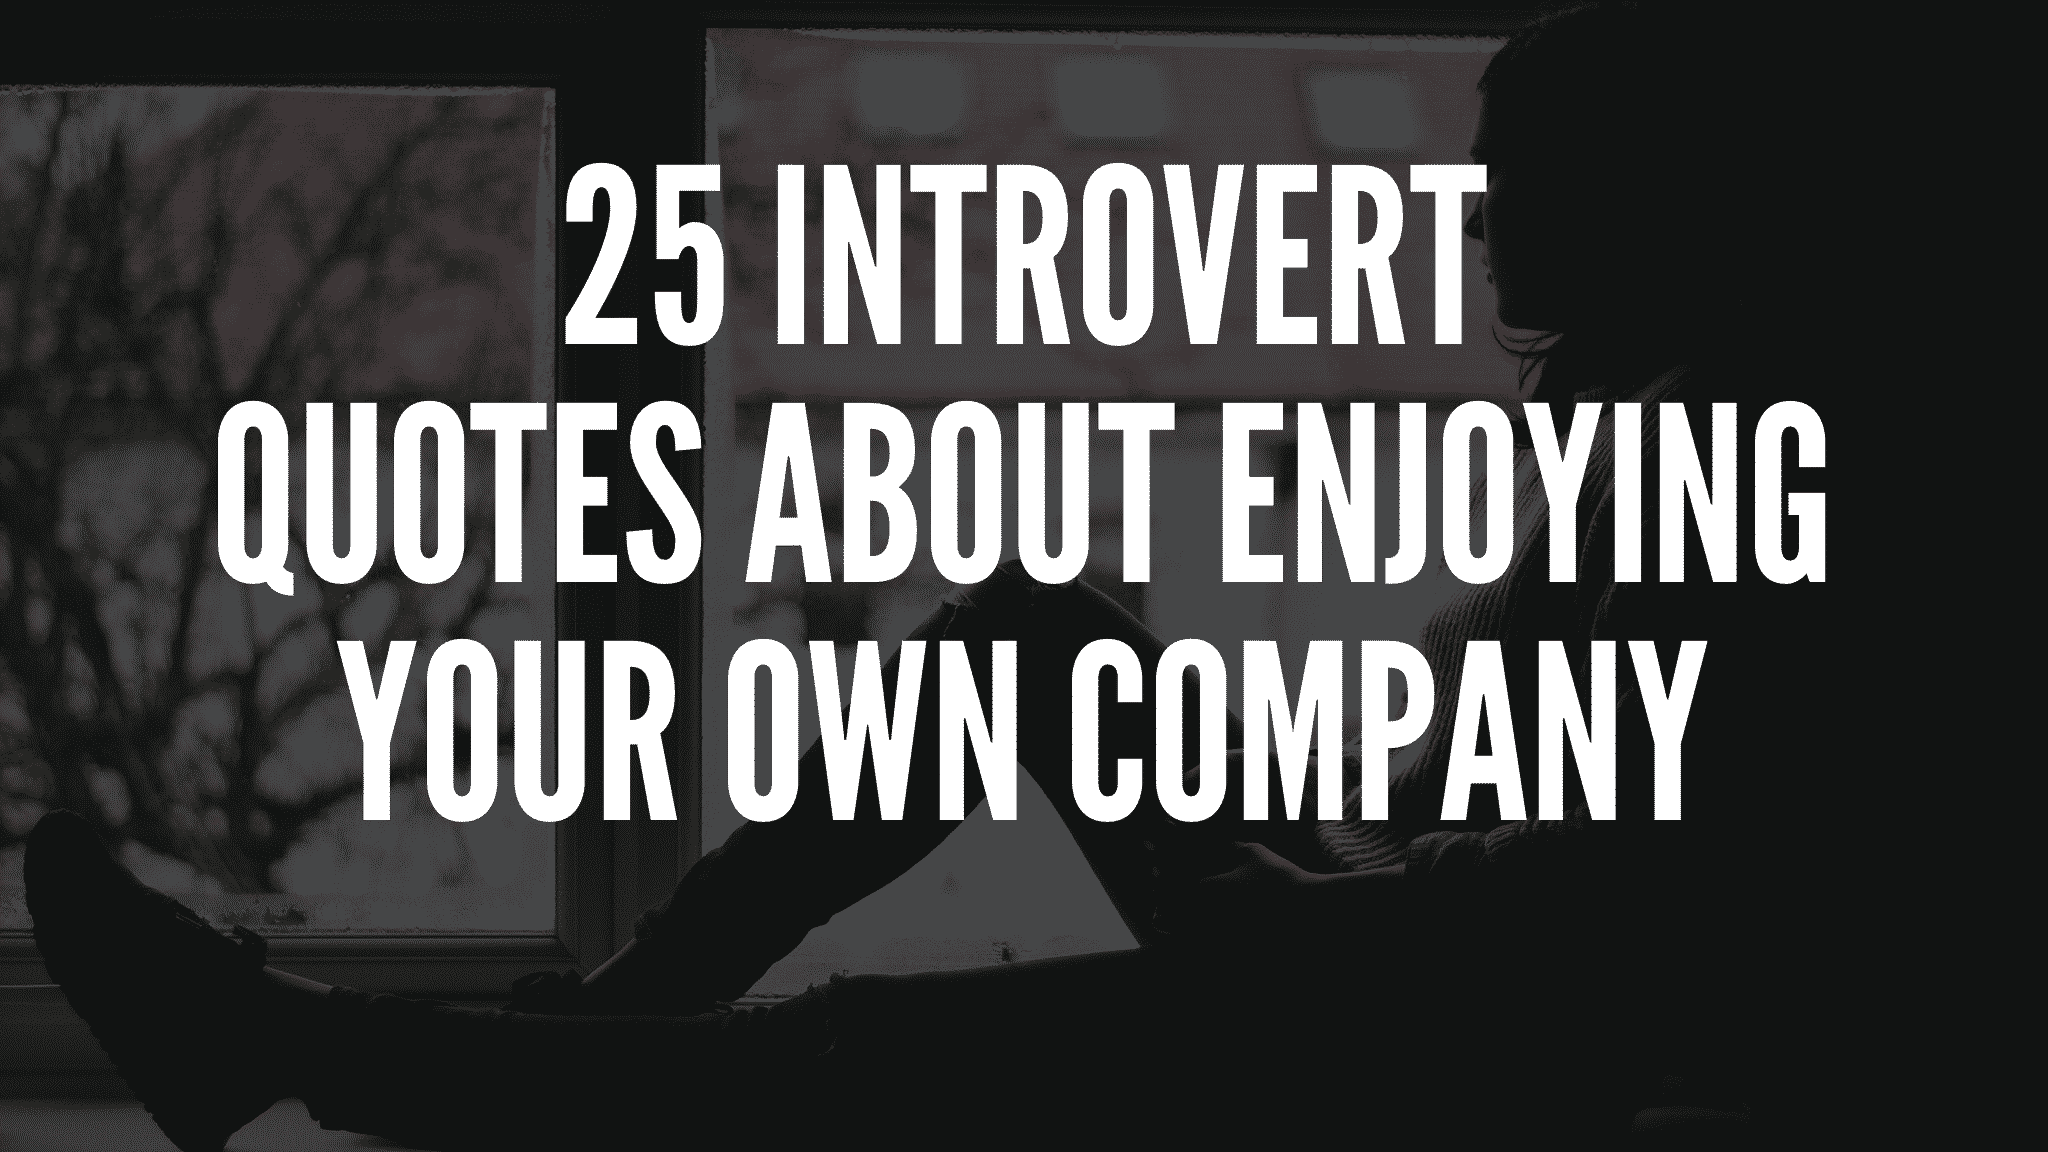 25 Introvert Quotes About Enjoying Your Time Alone